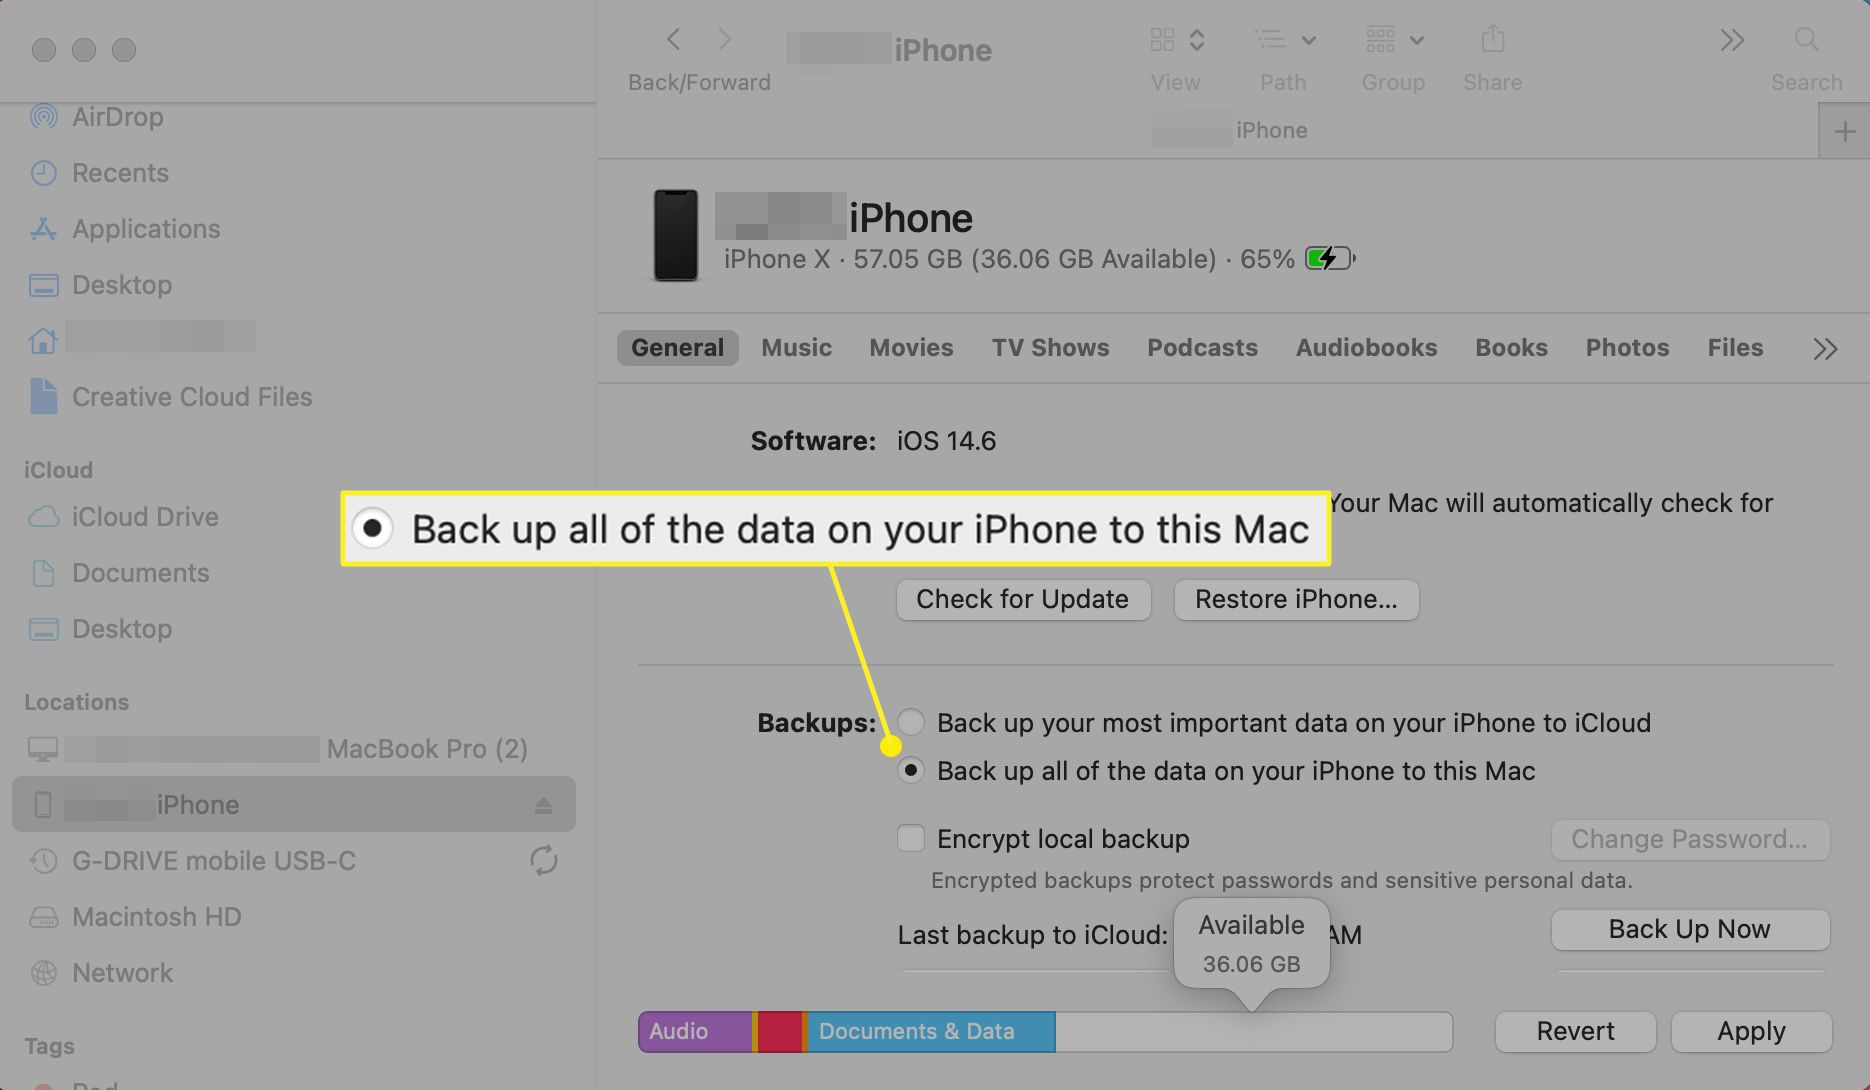 Mac Finder with Back up all of the data on your iPhone to the Mac selected